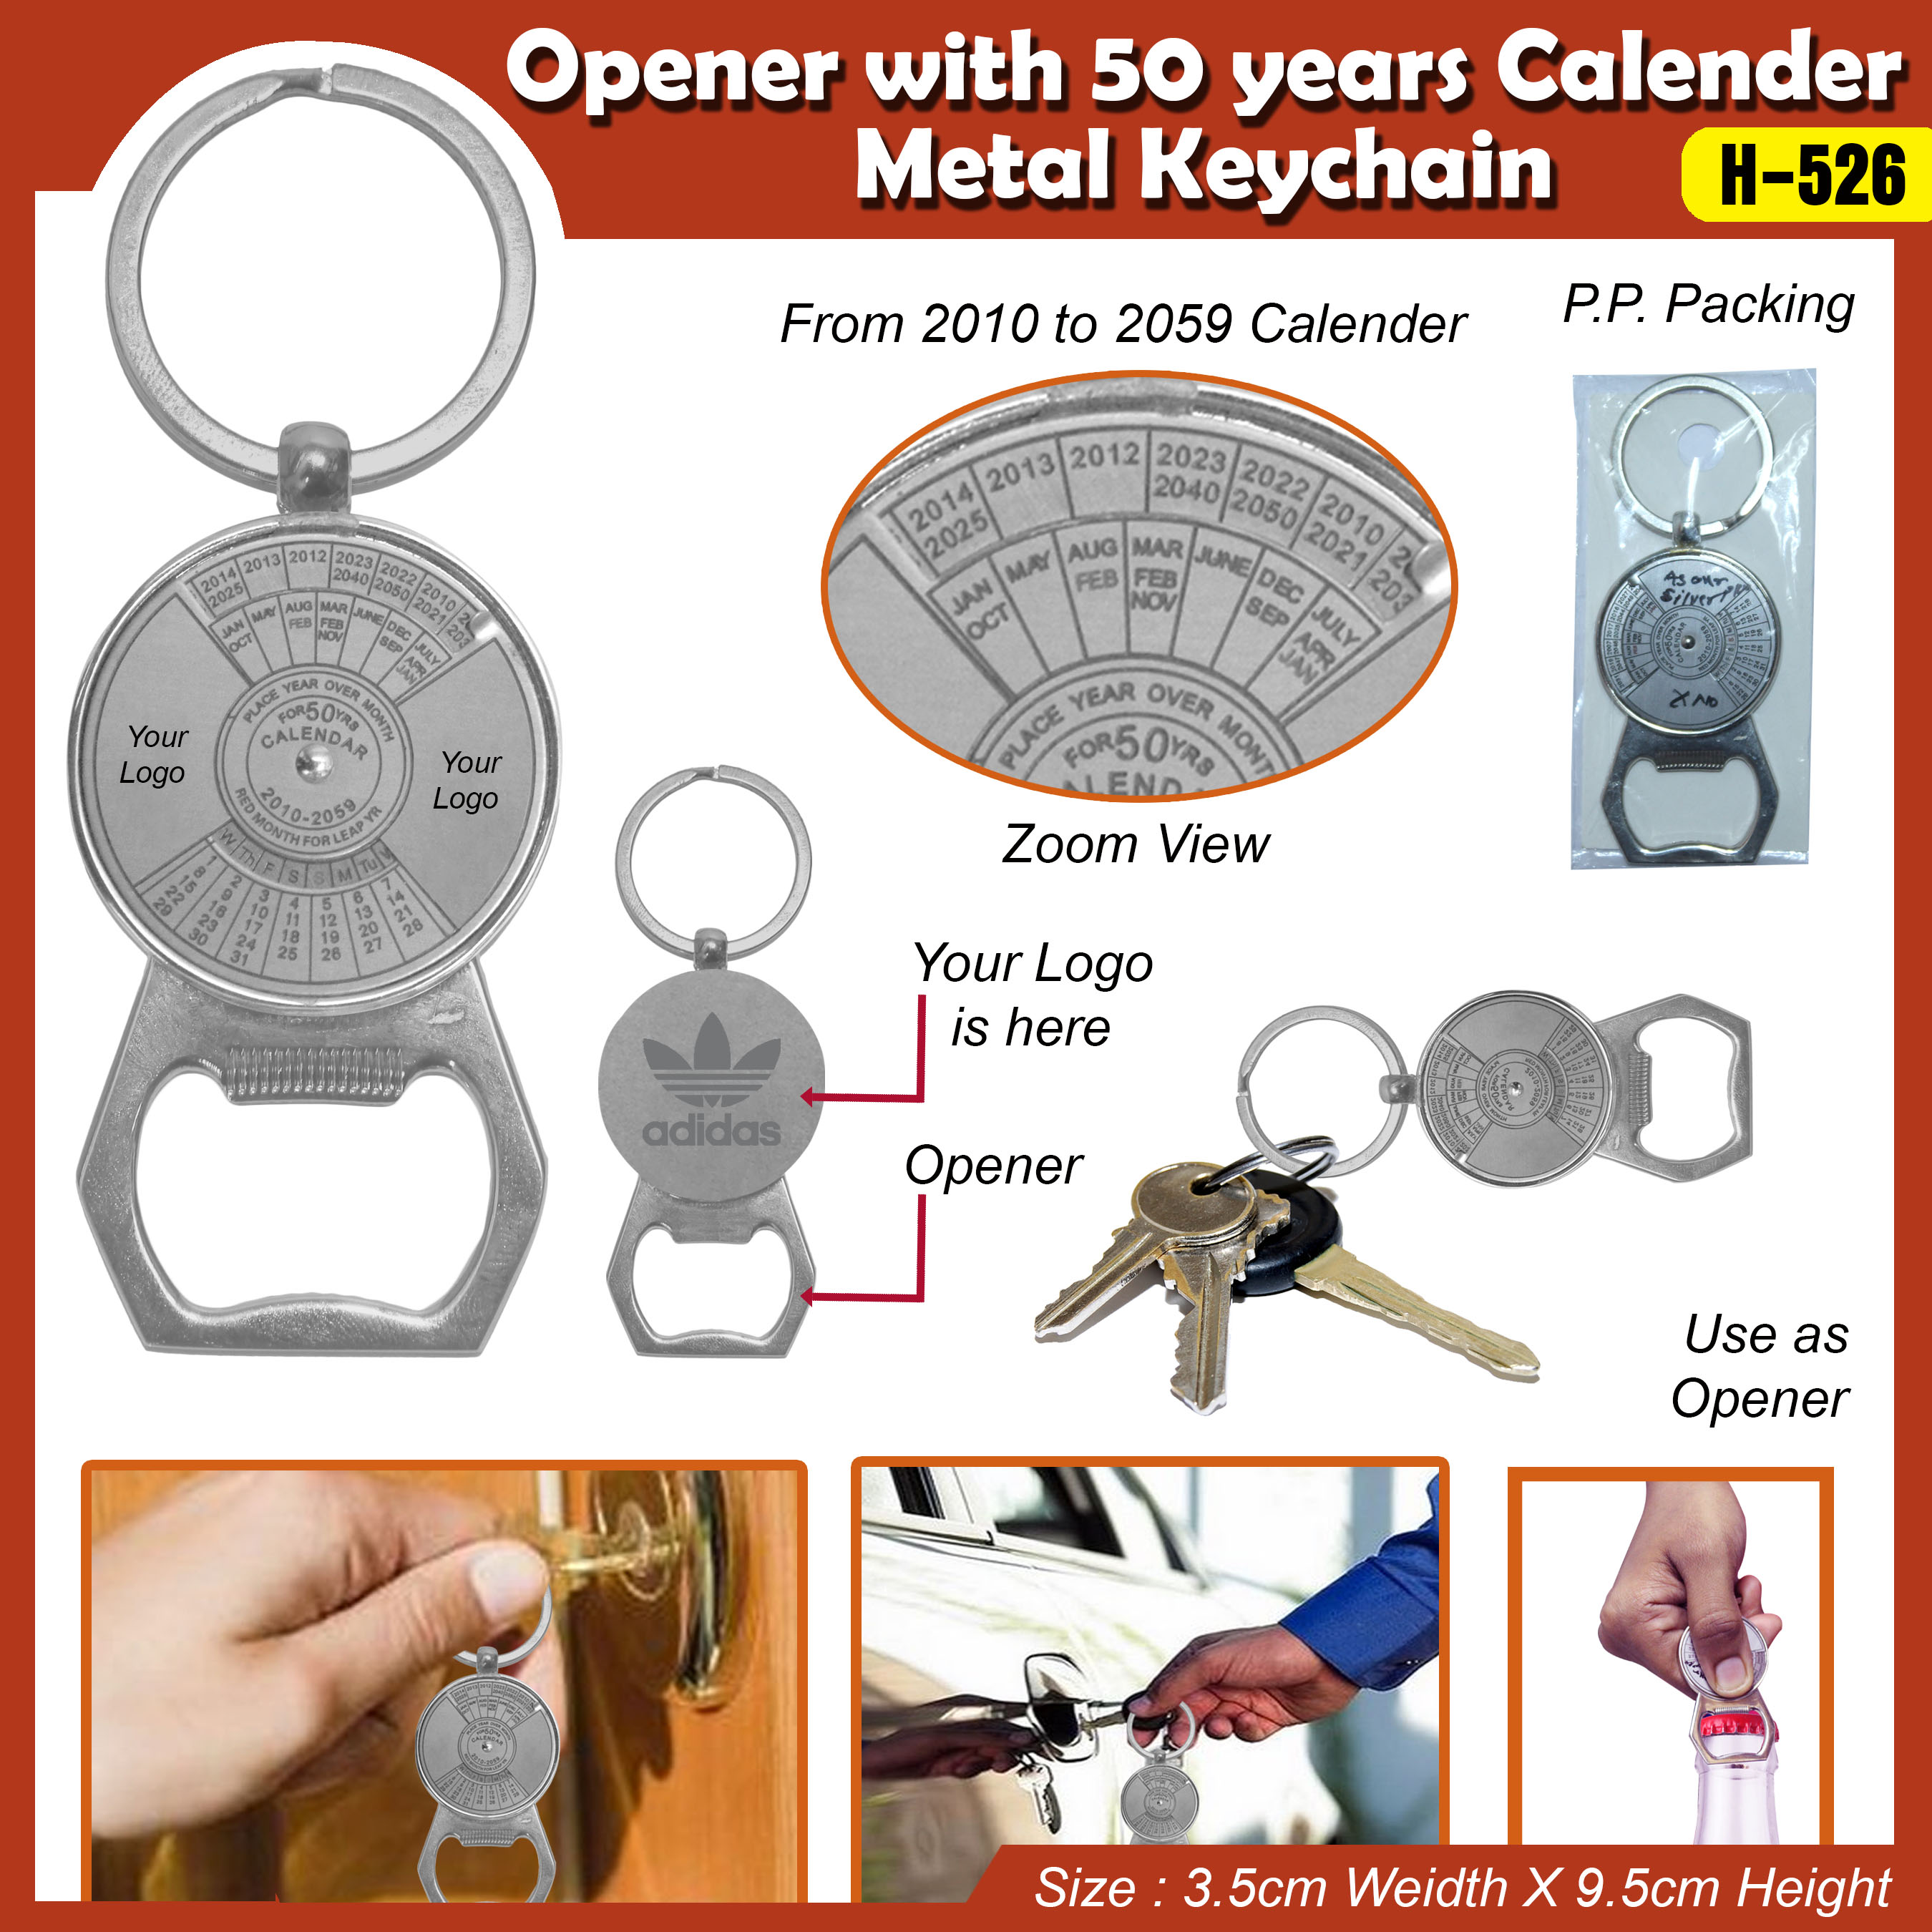 Opener With 50yrs Calendar Keychain H-526